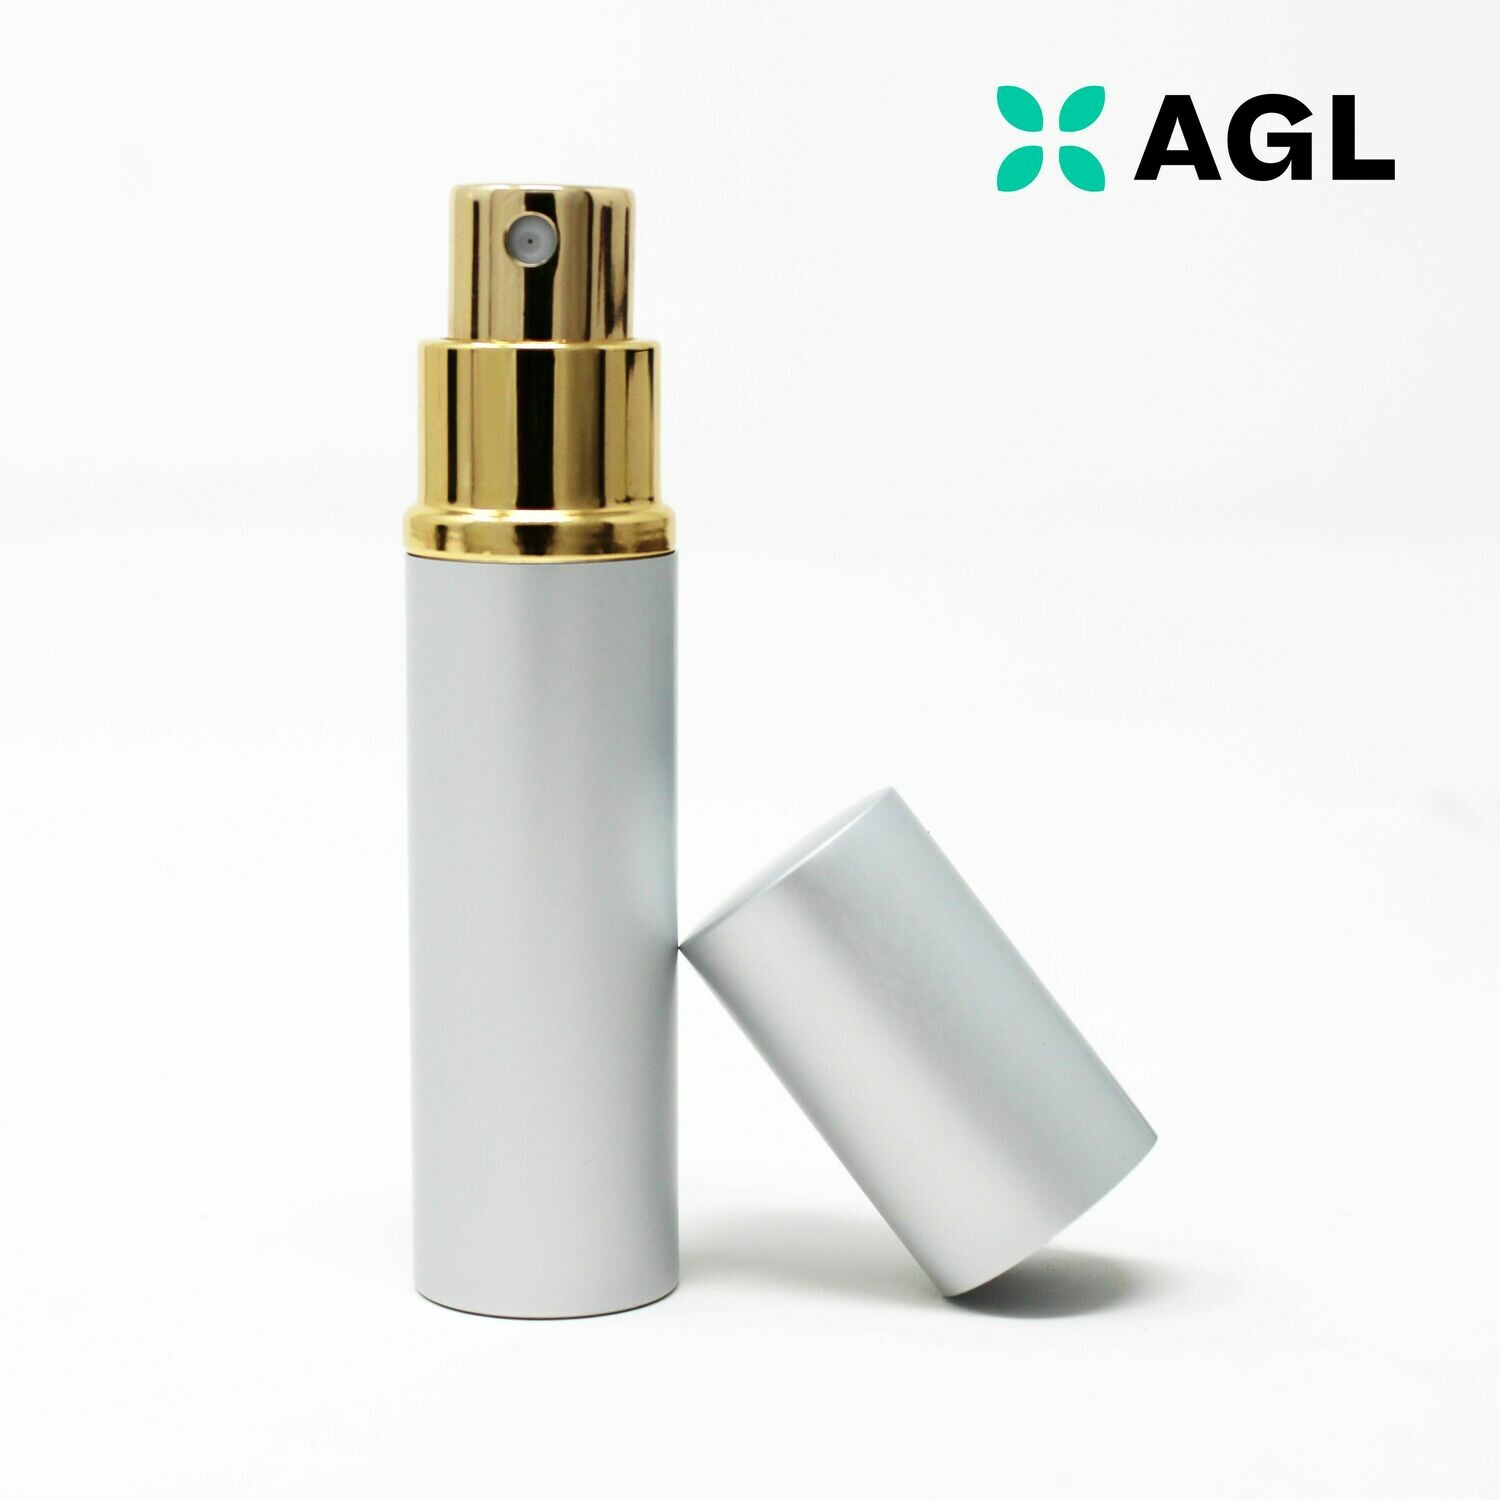 CANNABIDIOL I 1:1 SUBLINGUAL SPRAY NDC:10341  (350mg)(AGL)